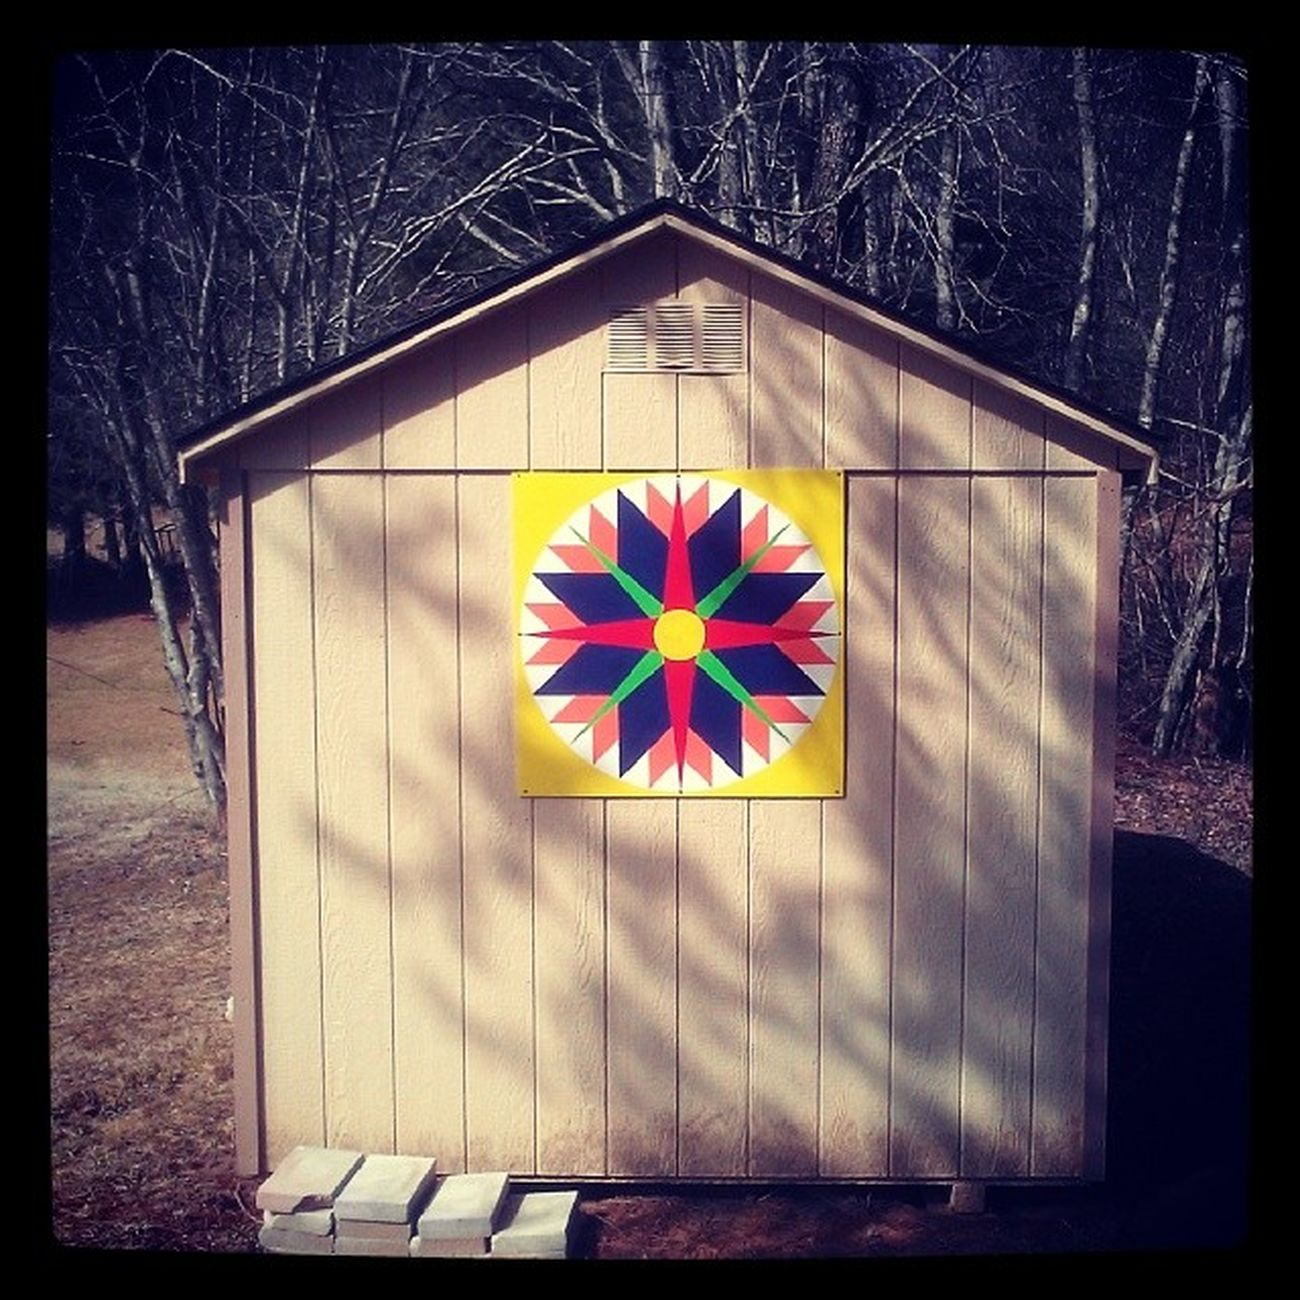 Hex symbol on shed Northcatolina Appalachia Mountains Styx shed sign backcountry farmland